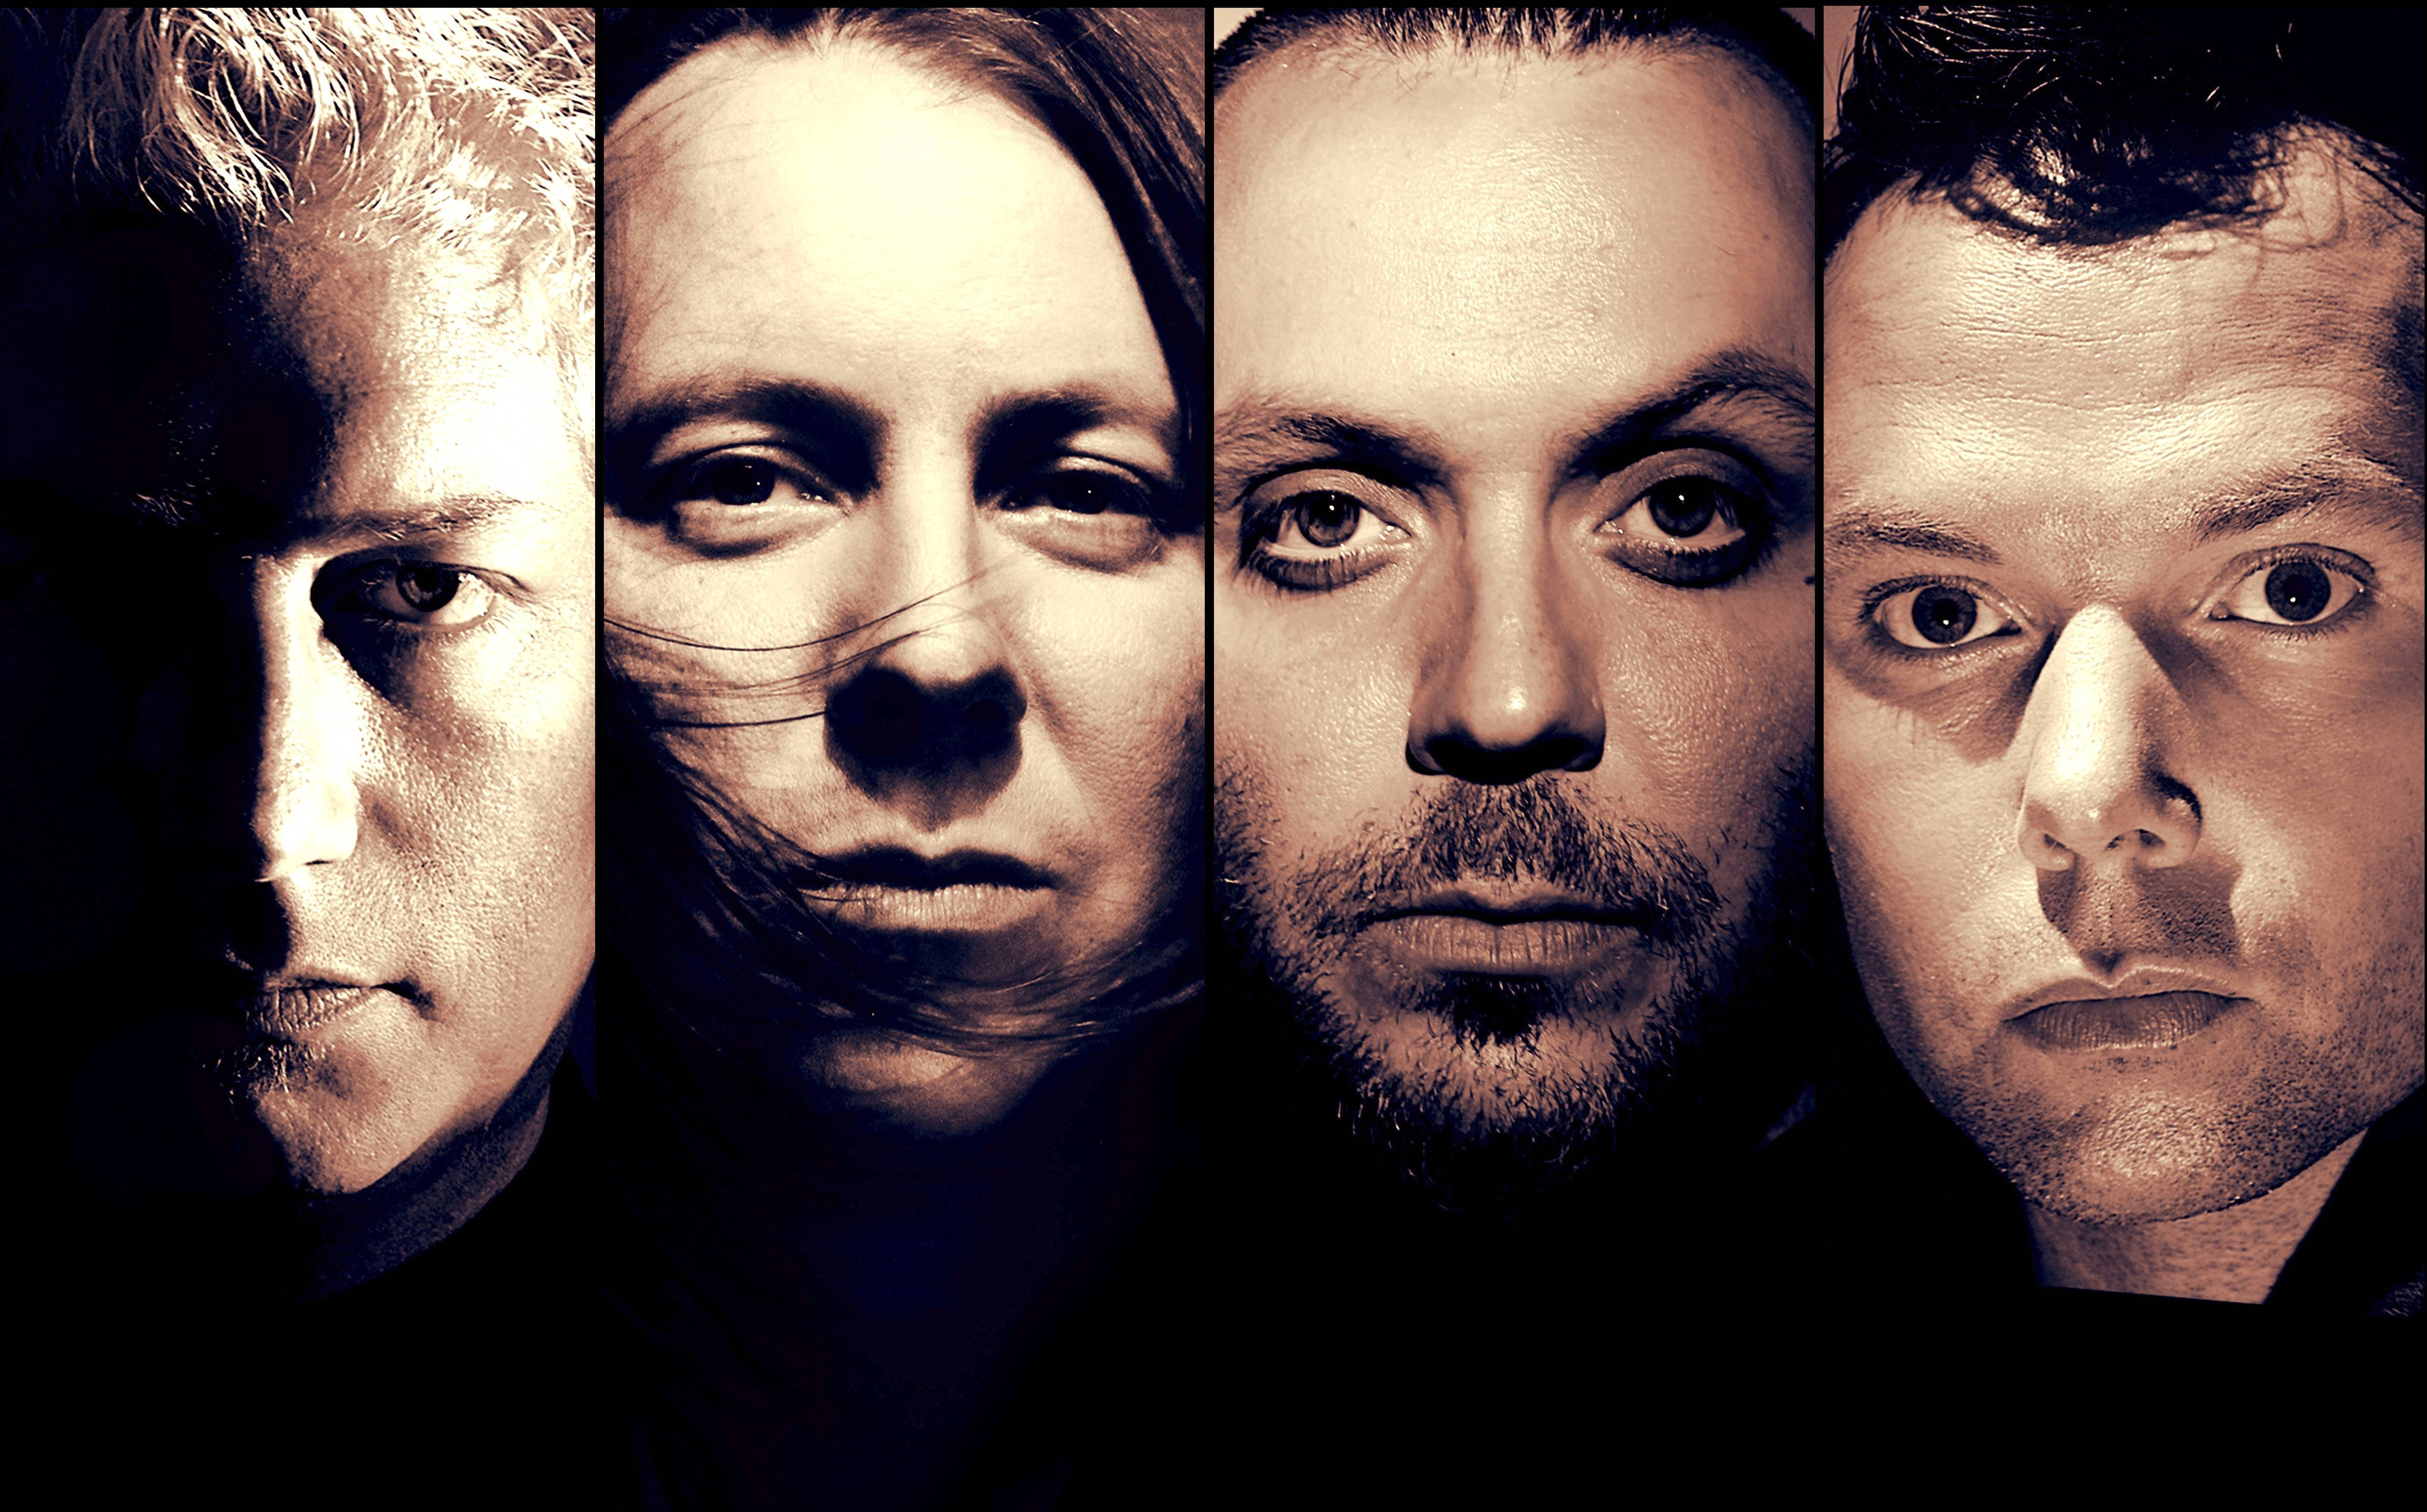 Alternative rock band Blue October will play in Libertyville next week.